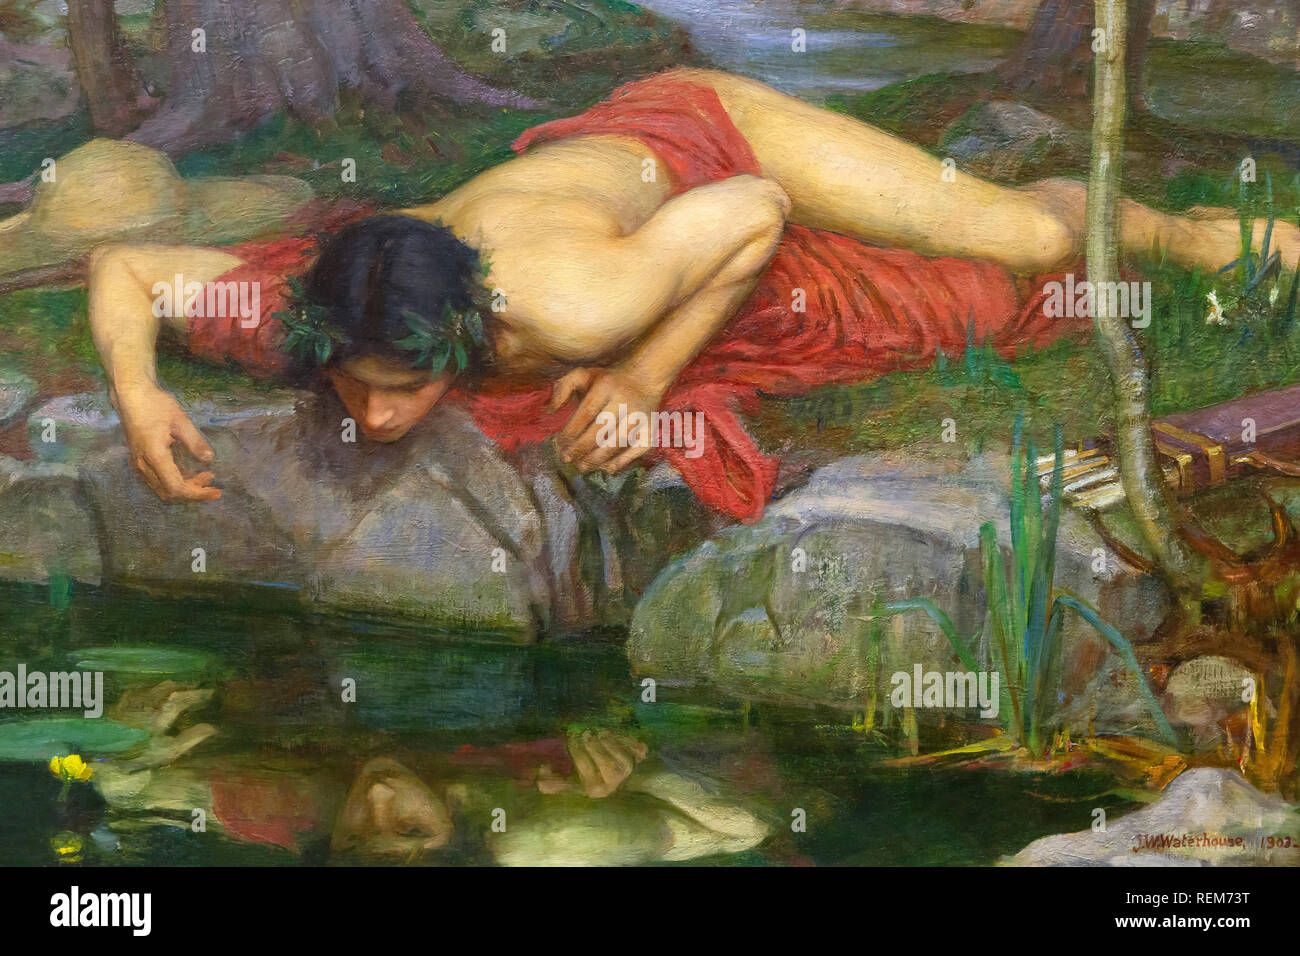 Narcissus, detail from Echo and Narcissus, John William Waterhouse, 1903, - Stock Image